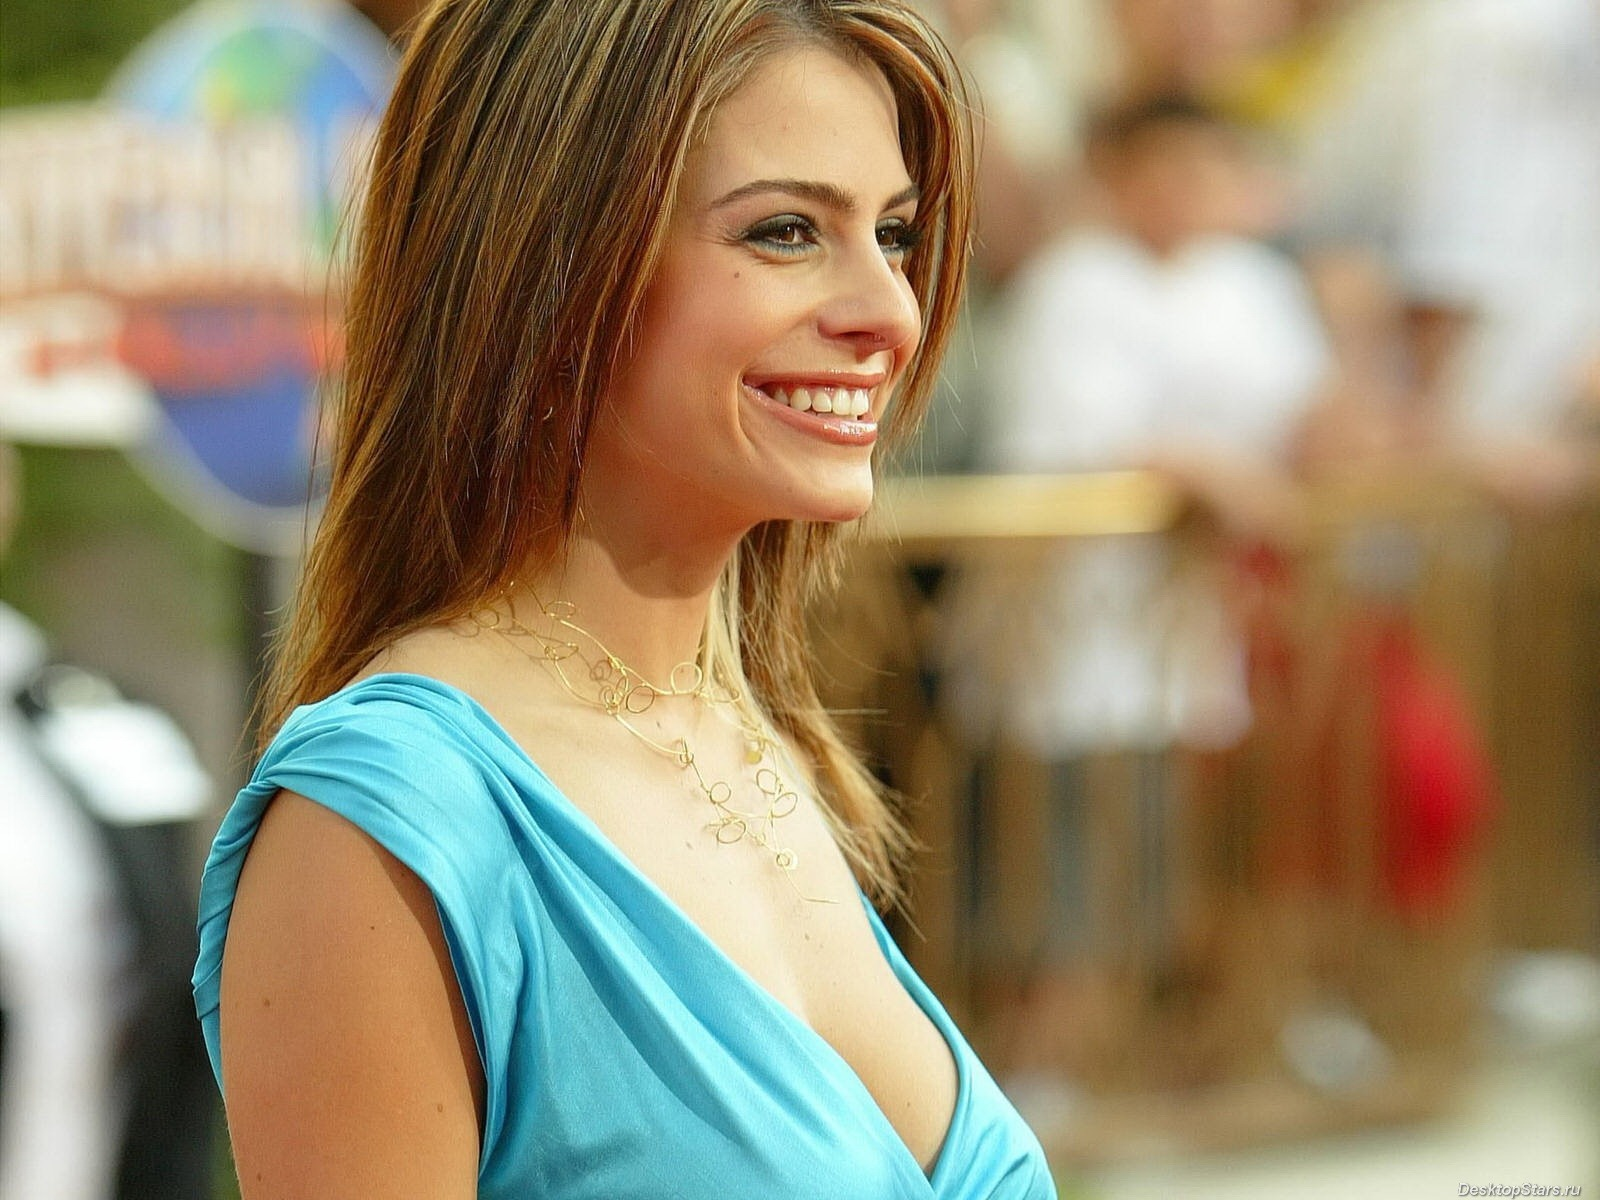 Maria Menounos #015 - 1600x1200 Wallpapers Pictures Photos Images